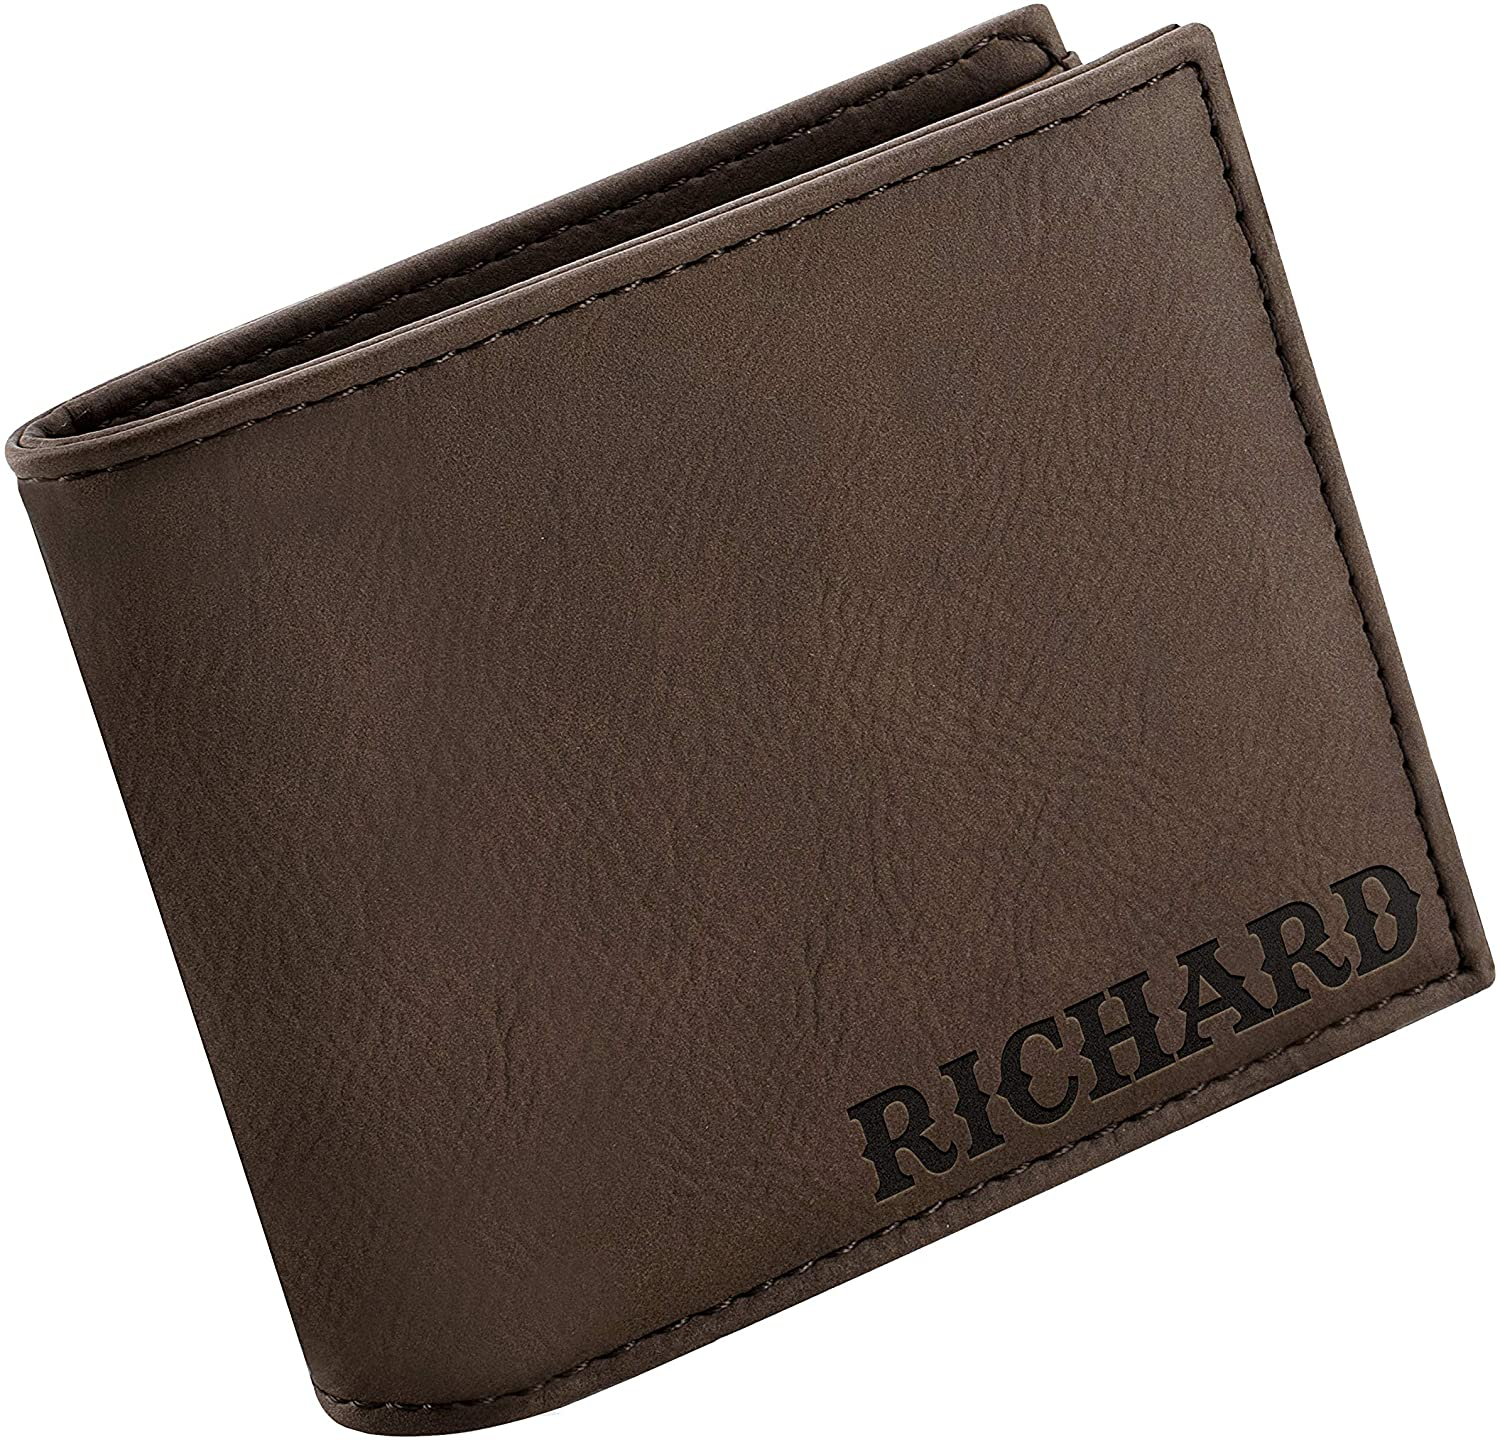 Personalized Wallets for Men, 6 Colors & 19 Font Options, Custom Engraved Leather Wallet - Gifts for Husband - Father's Day Gifts, Personalized Gifts for Men